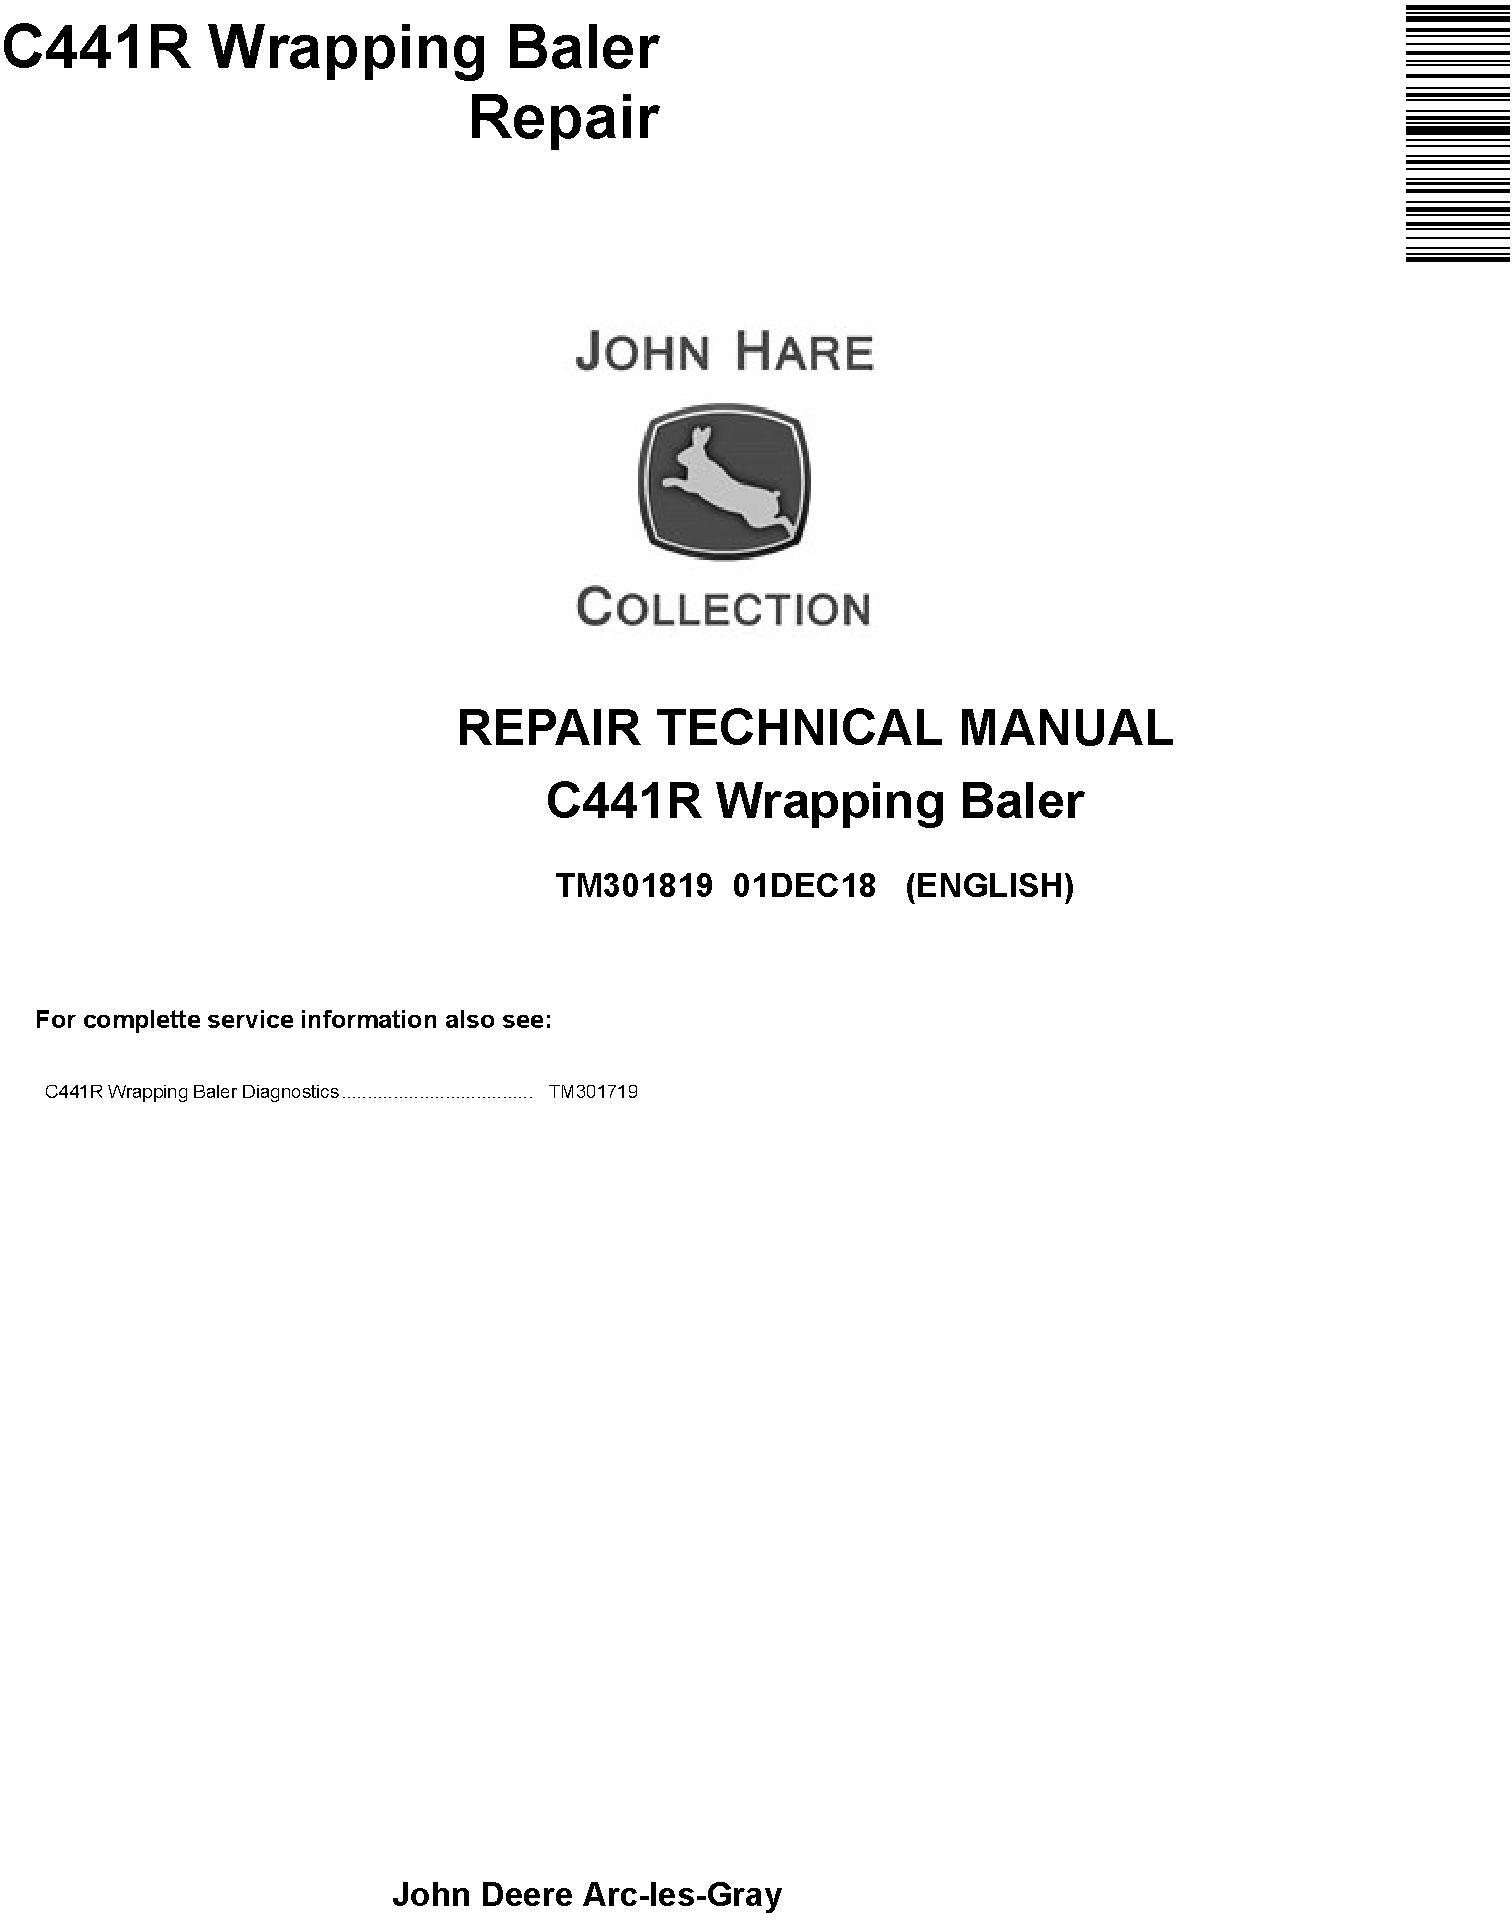 John Deere C441R Wrapping Baler Service Repair Technical Manual (TM301819) - 19253